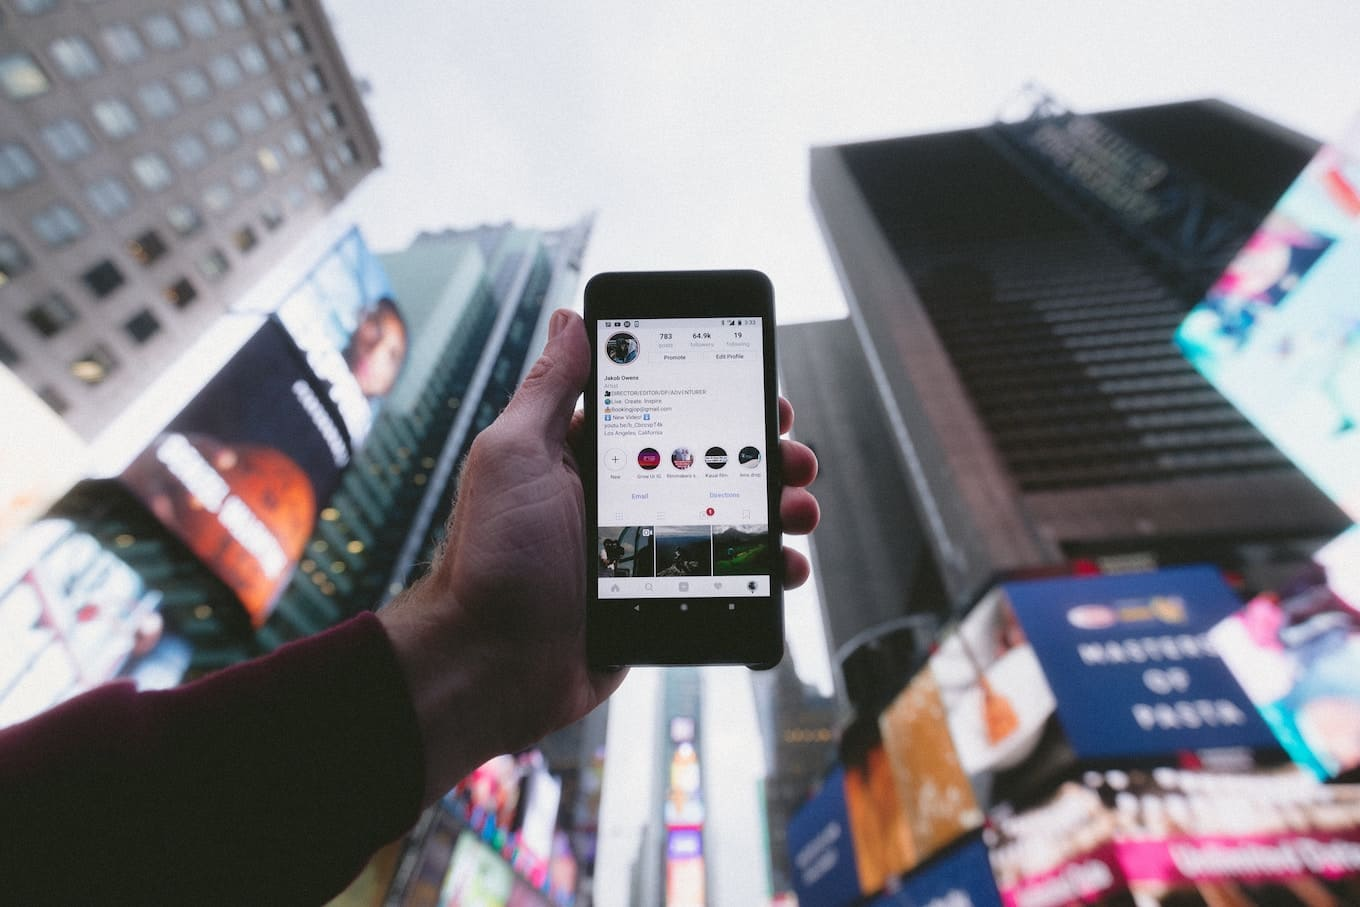 Holding phone in Times Square